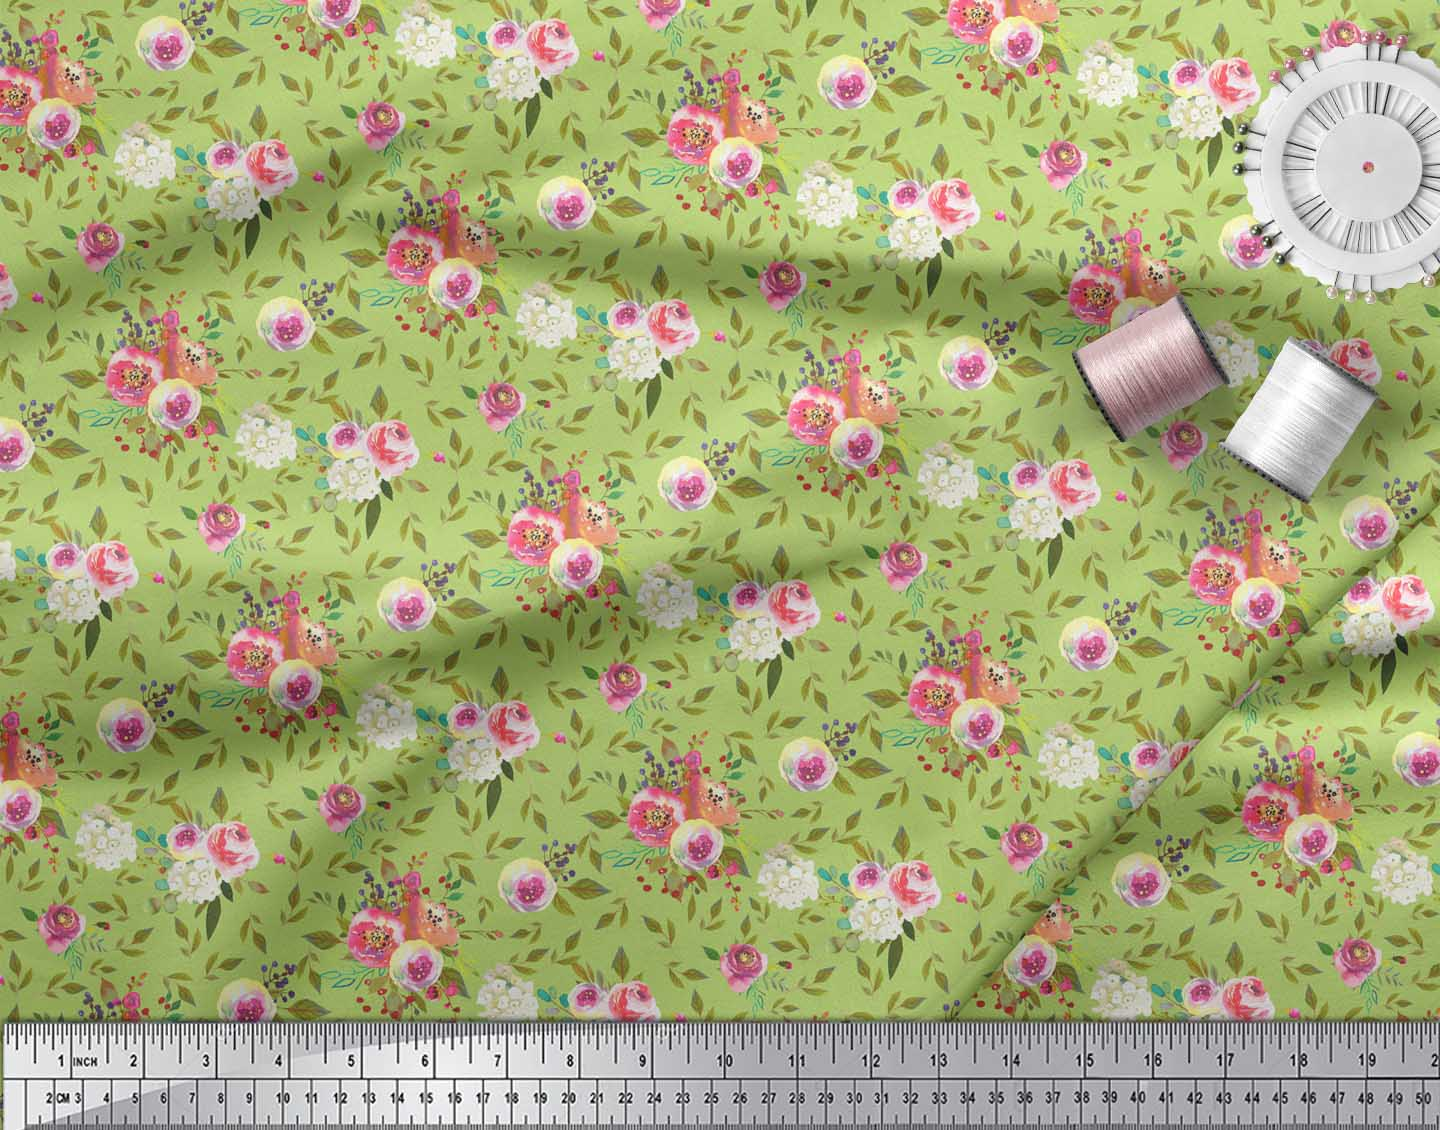 Soimoi-Green-Cotton-Poplin-Fabric-Leaf-Floral-Decor-Fabric-Printed-G5A thumbnail 3